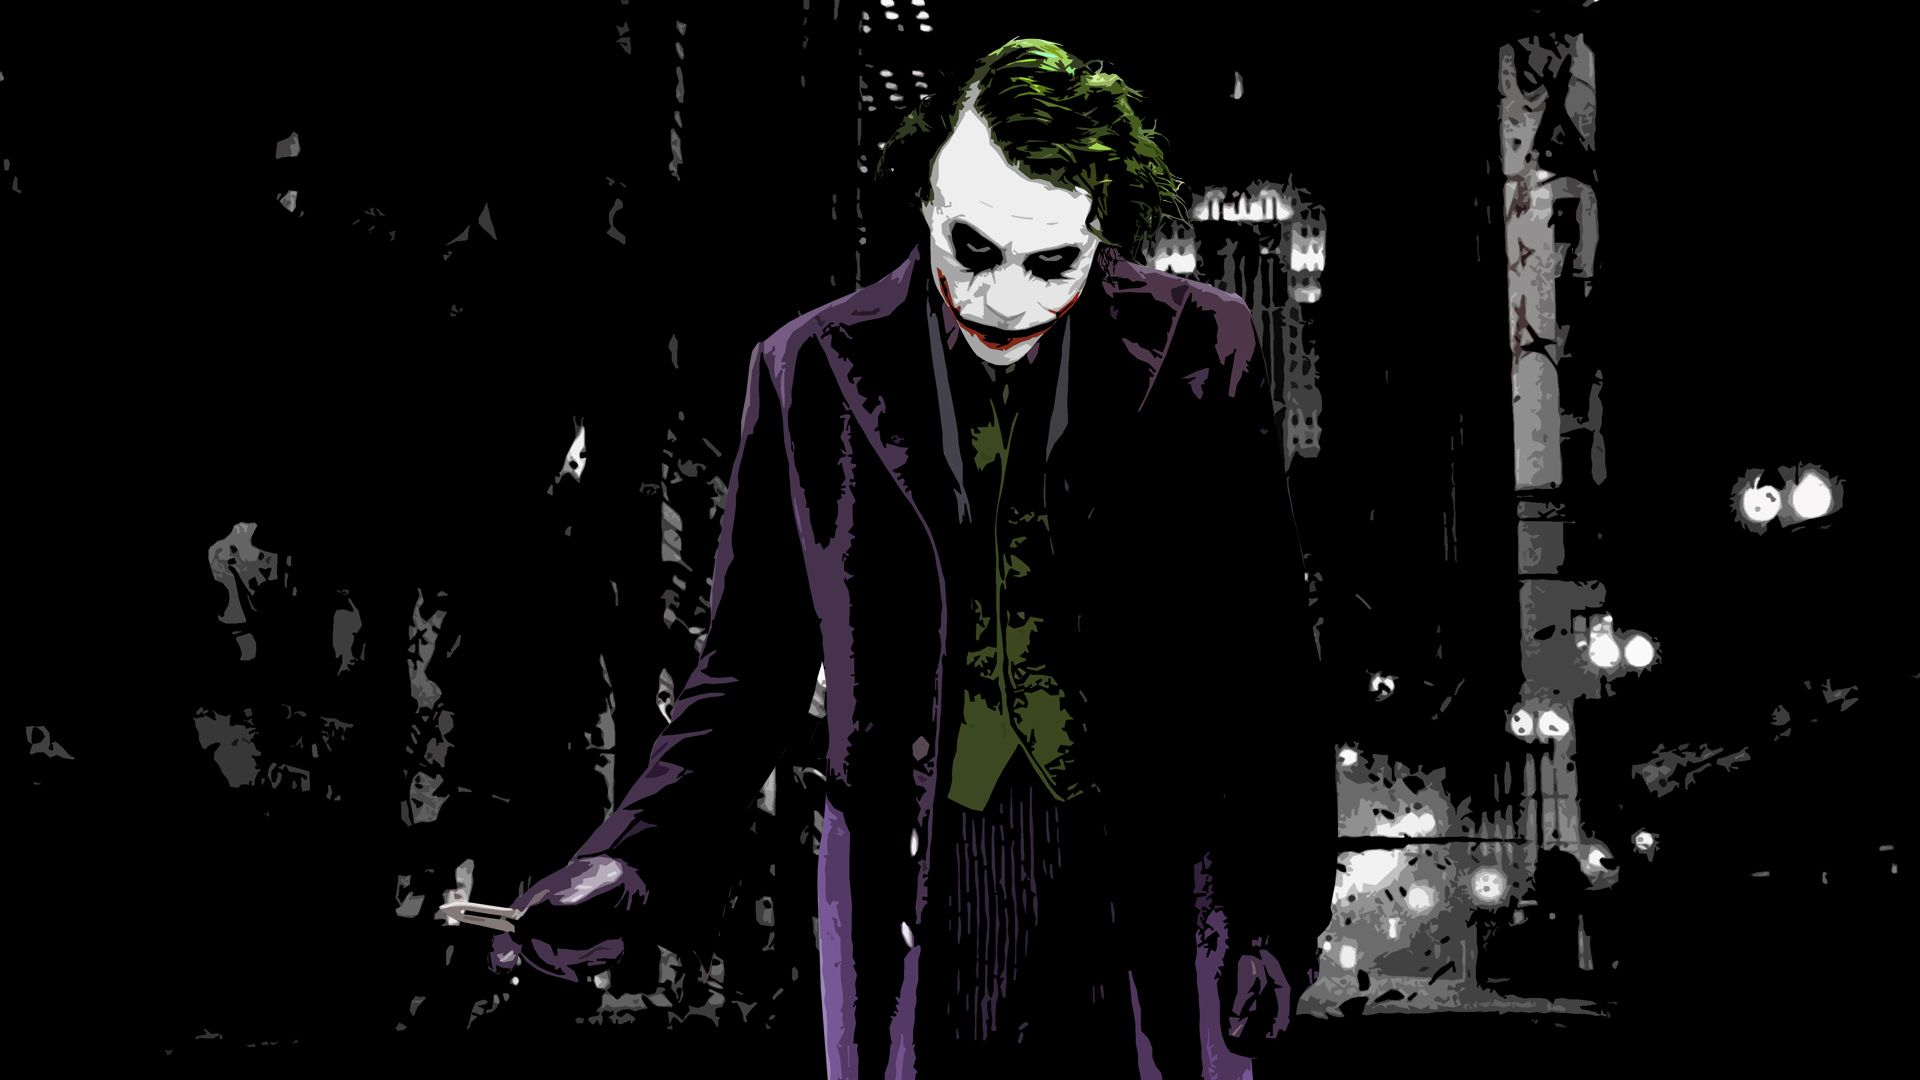 Heath Ledger Joker Hd Wallpaper 1920x1080 With Images Joker